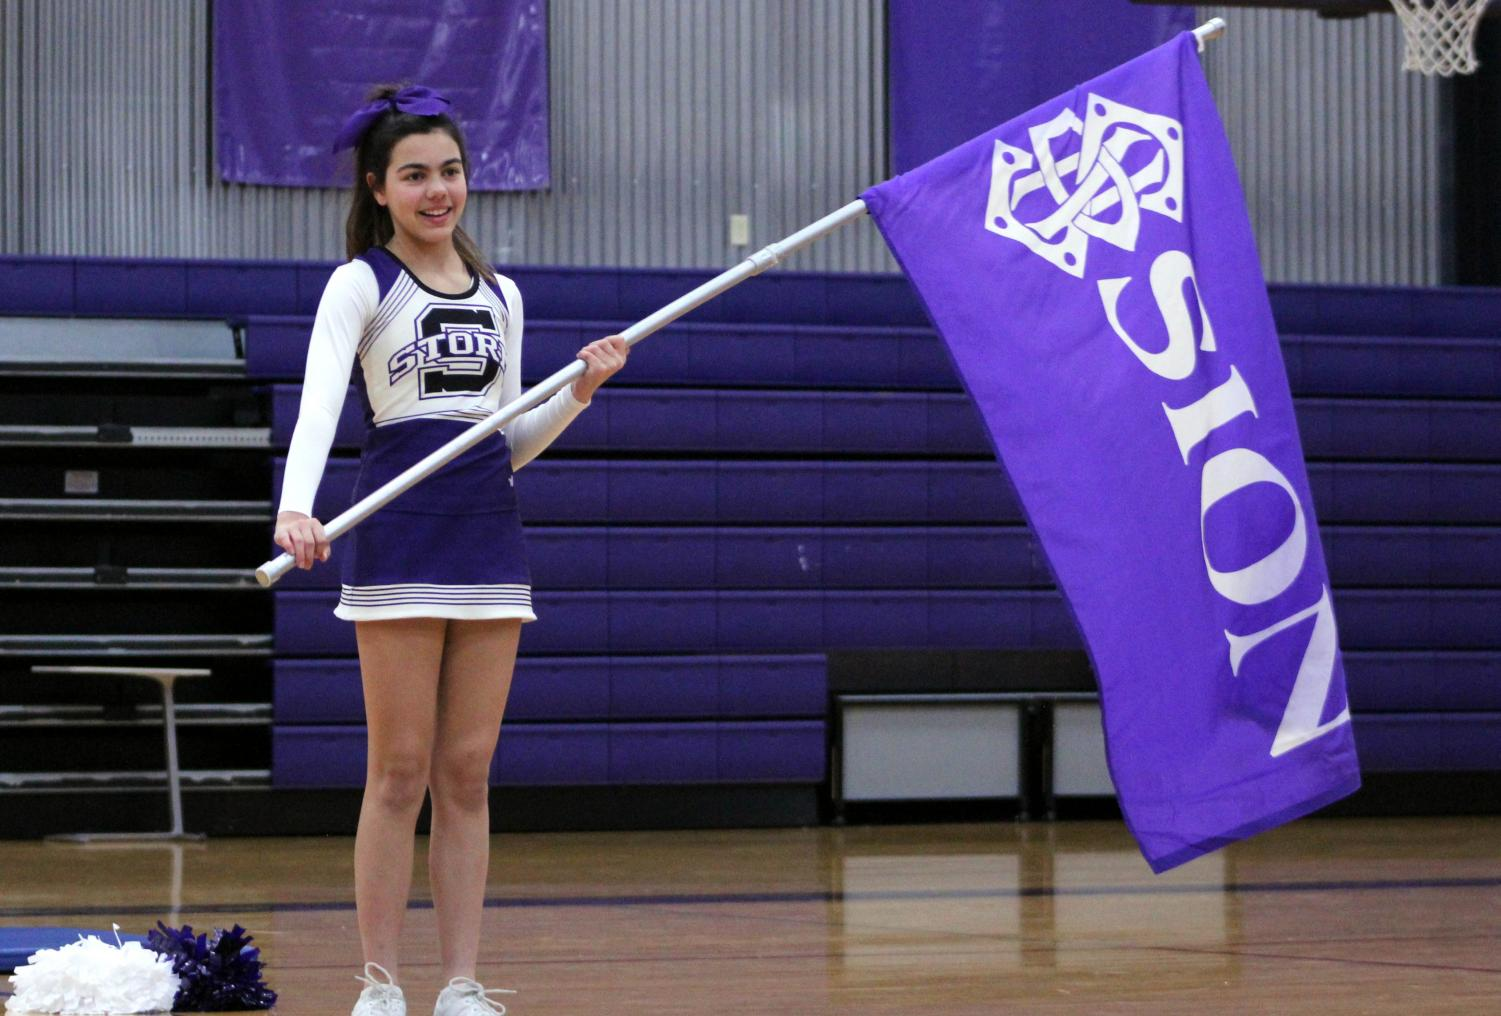 As the cheer team chants, freshman Paige Castillo waves the school flag for all to see during the pep assembly Friday, Nov. 22.